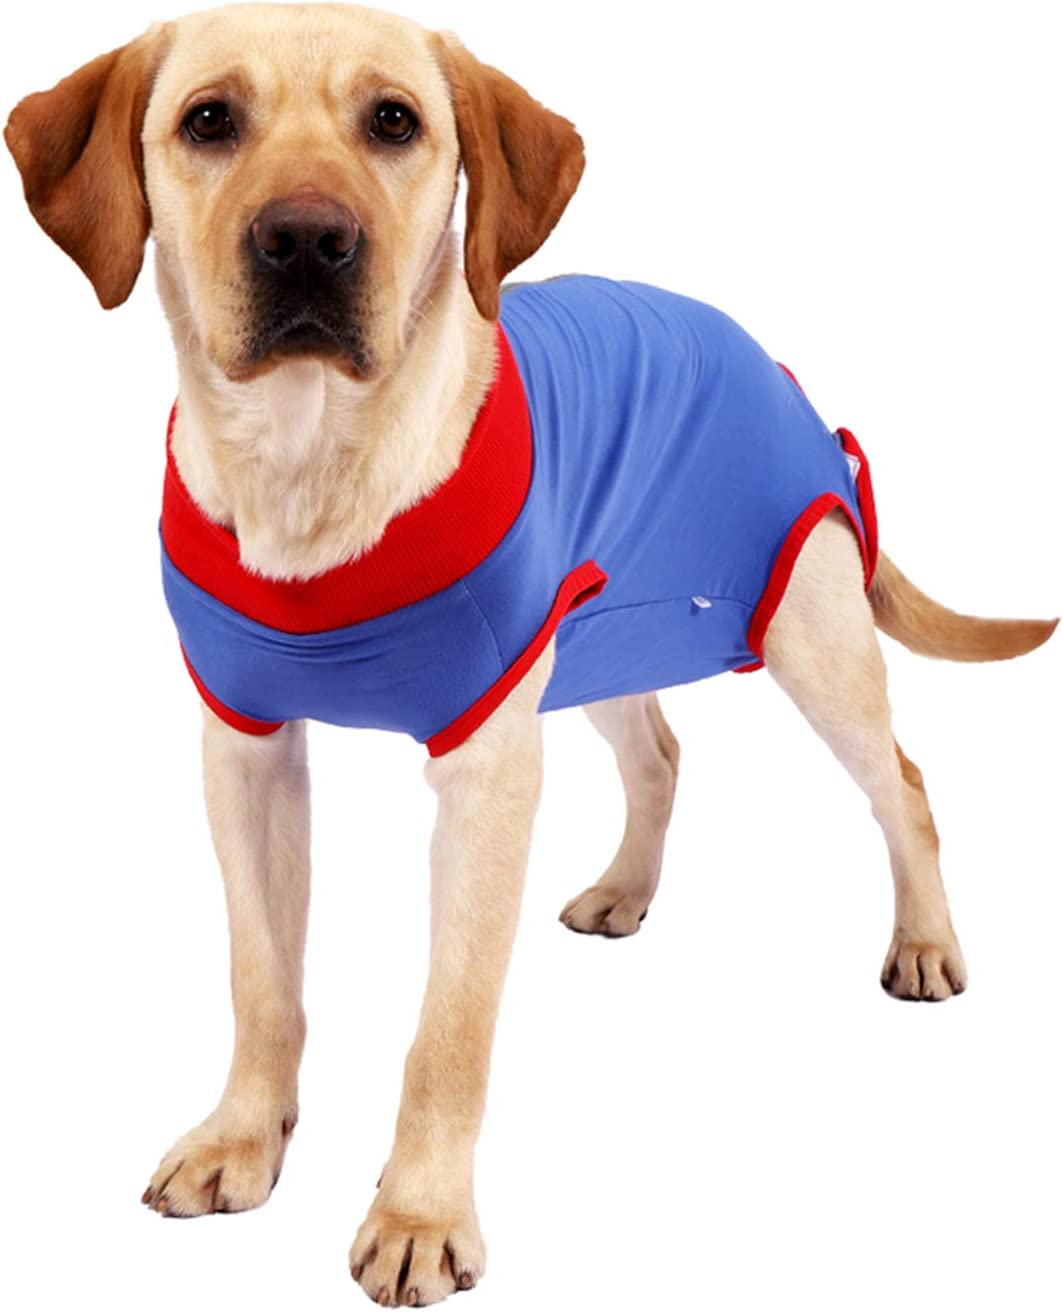 Wooruy Dog Surgical Recovery Suit Abdominal Wound Protector After Surgery Wear E-Collar Alternative for Dogs Zipper Design Home Indoor Pets Clothing